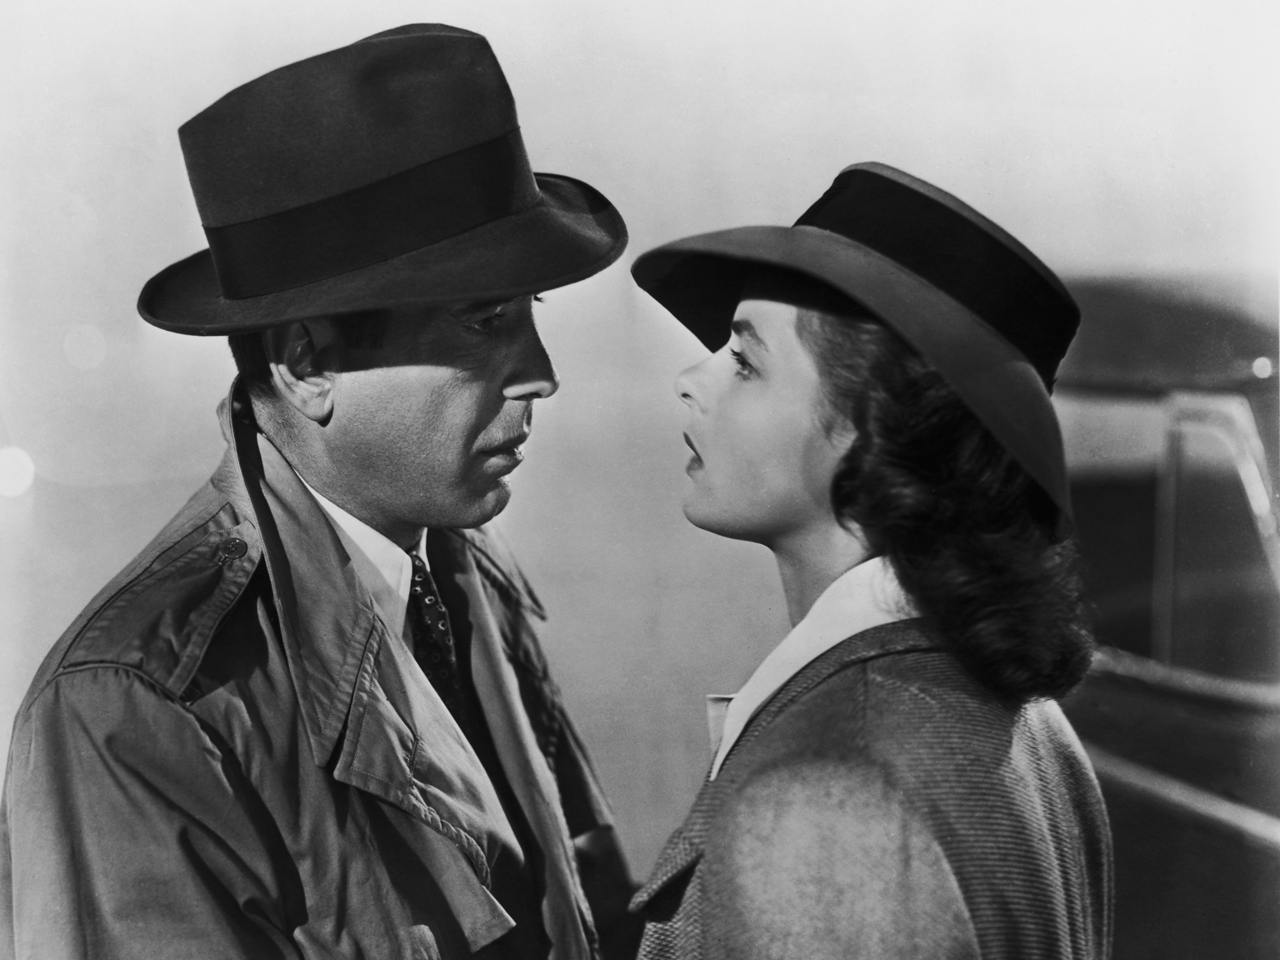 Humphrey Bogart and Ingrid Bergman talking in Casablanca